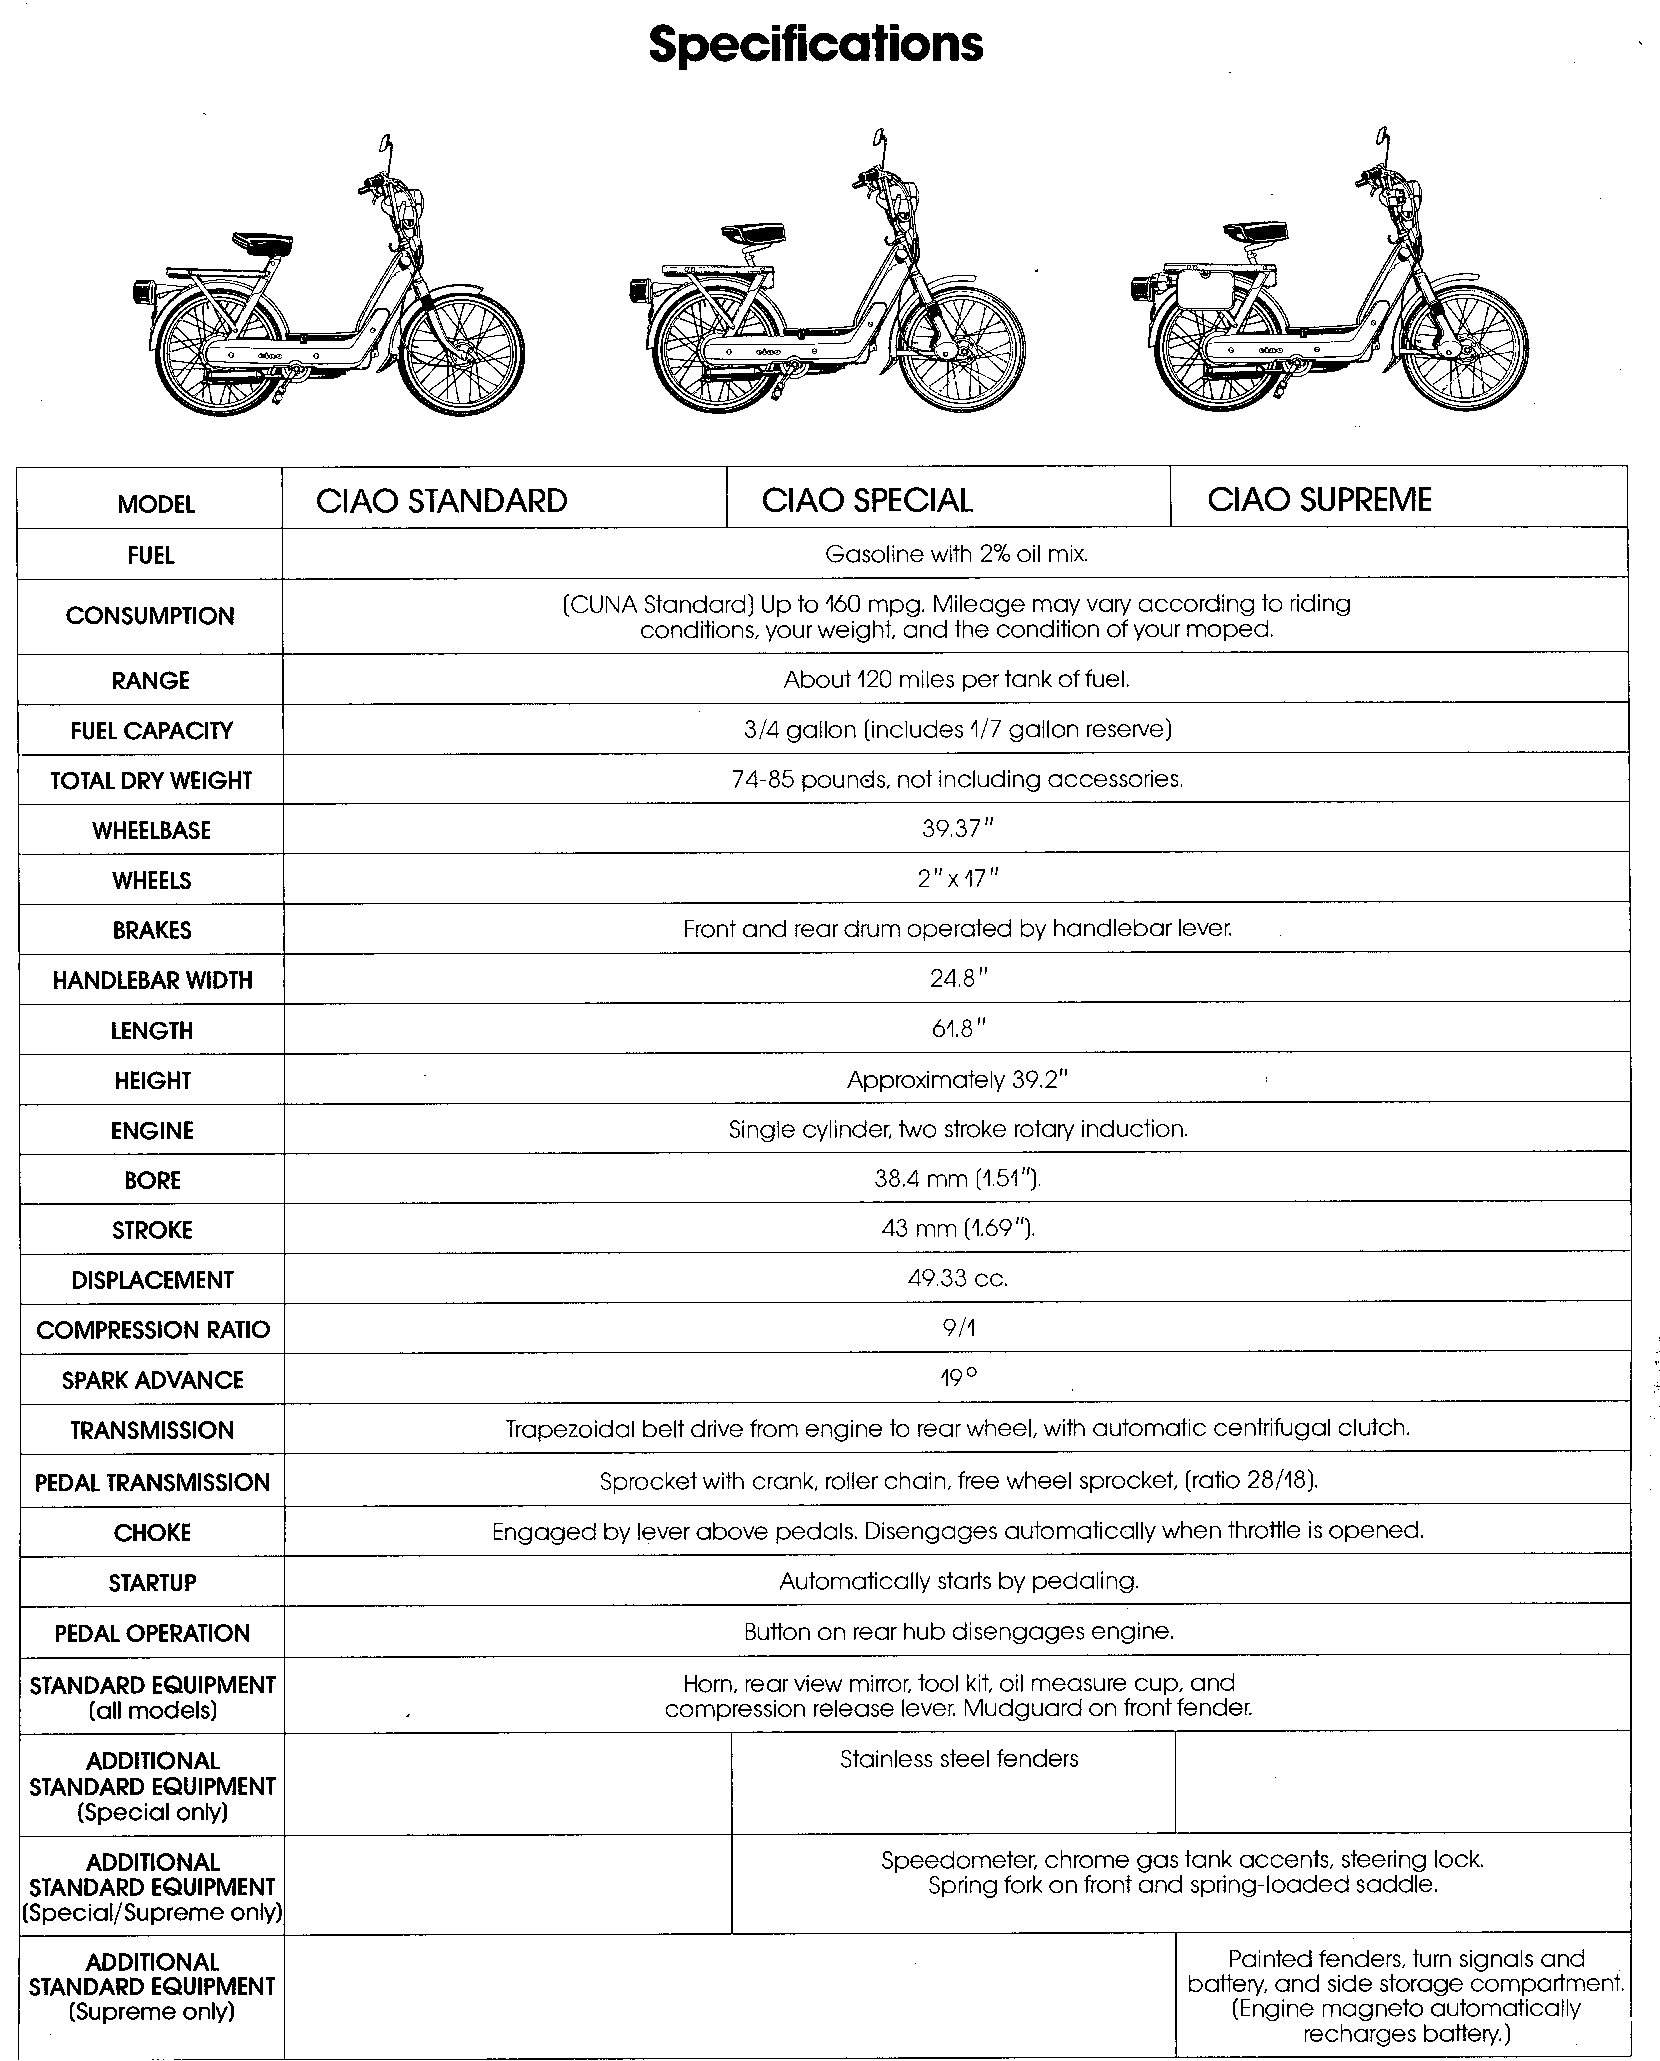 Ciao Vespa Wiring Diagram Library Scooters Electric Wirings 1978 Piaggio Mopeds Special Super Bravo